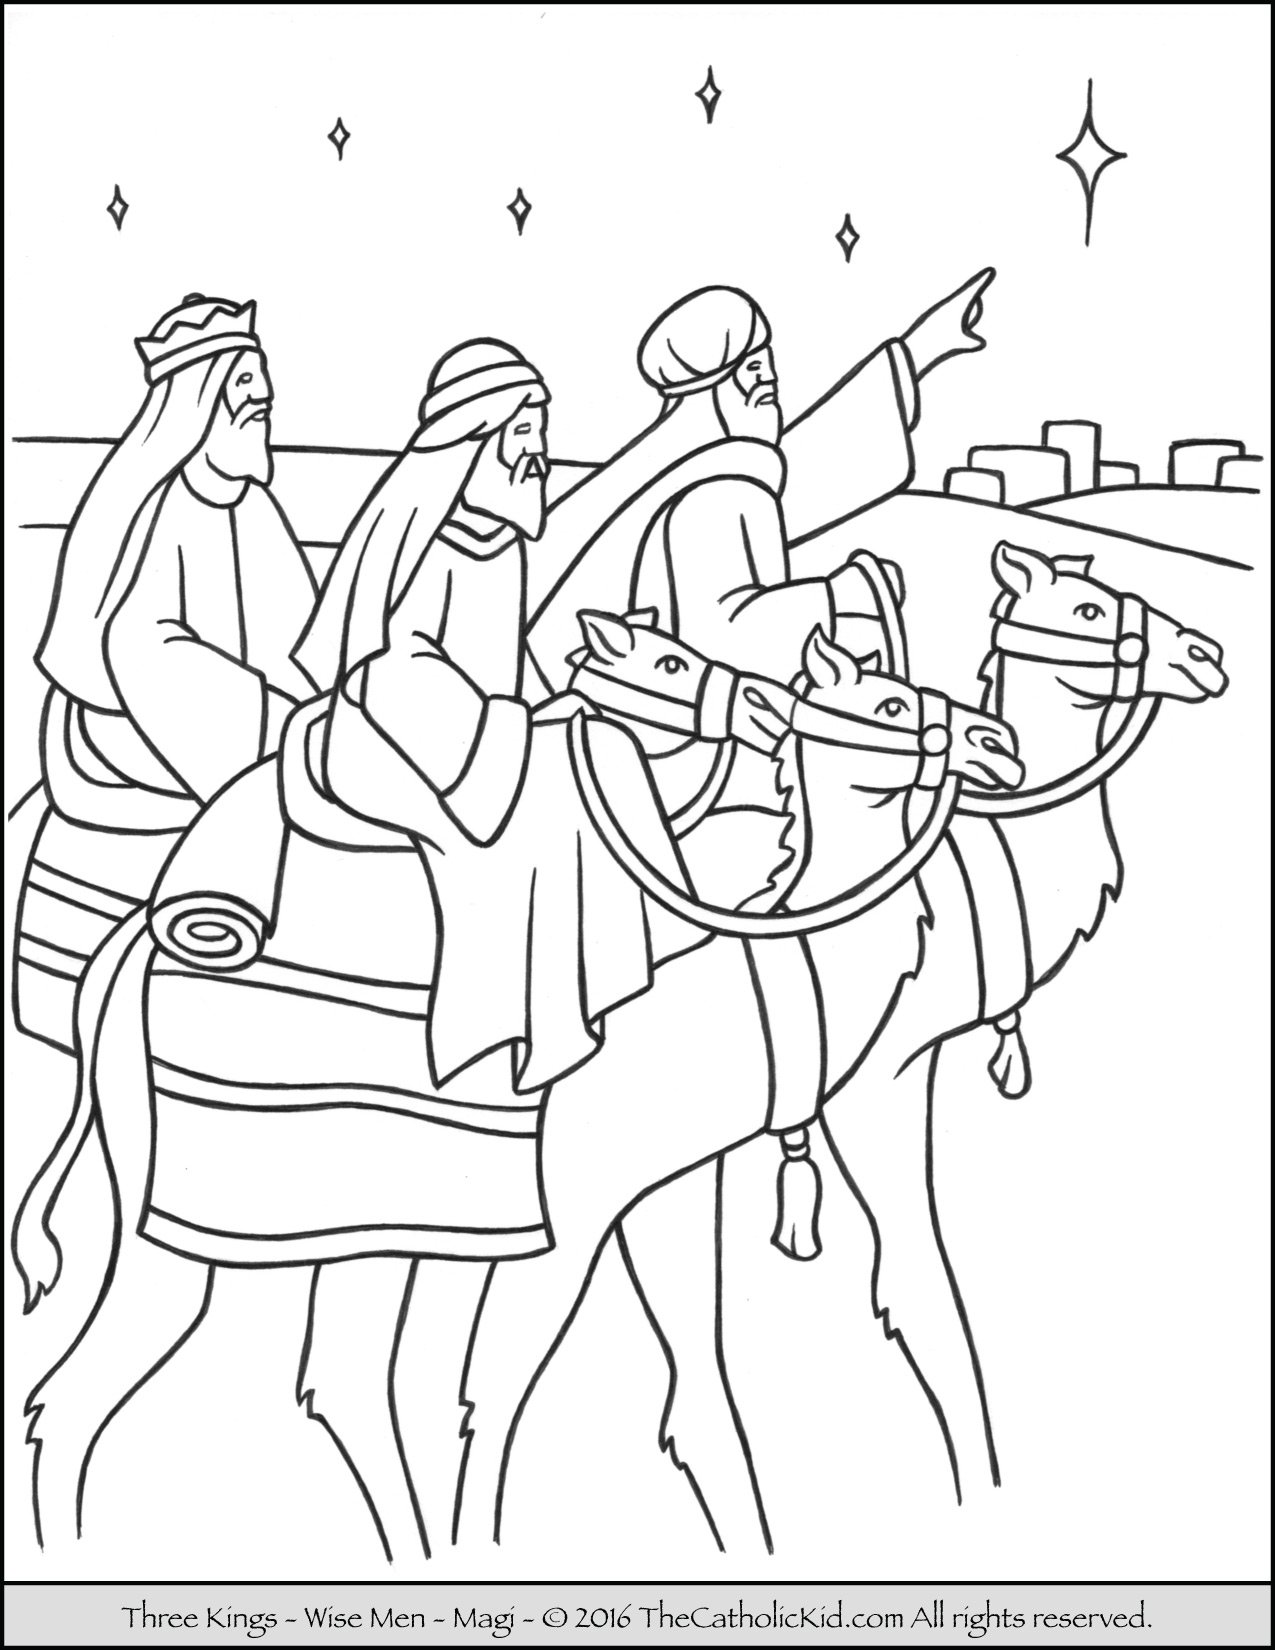 Uncategorized Wisemen Coloring Page three kings magi wise men coloring page thecahtolickid com page